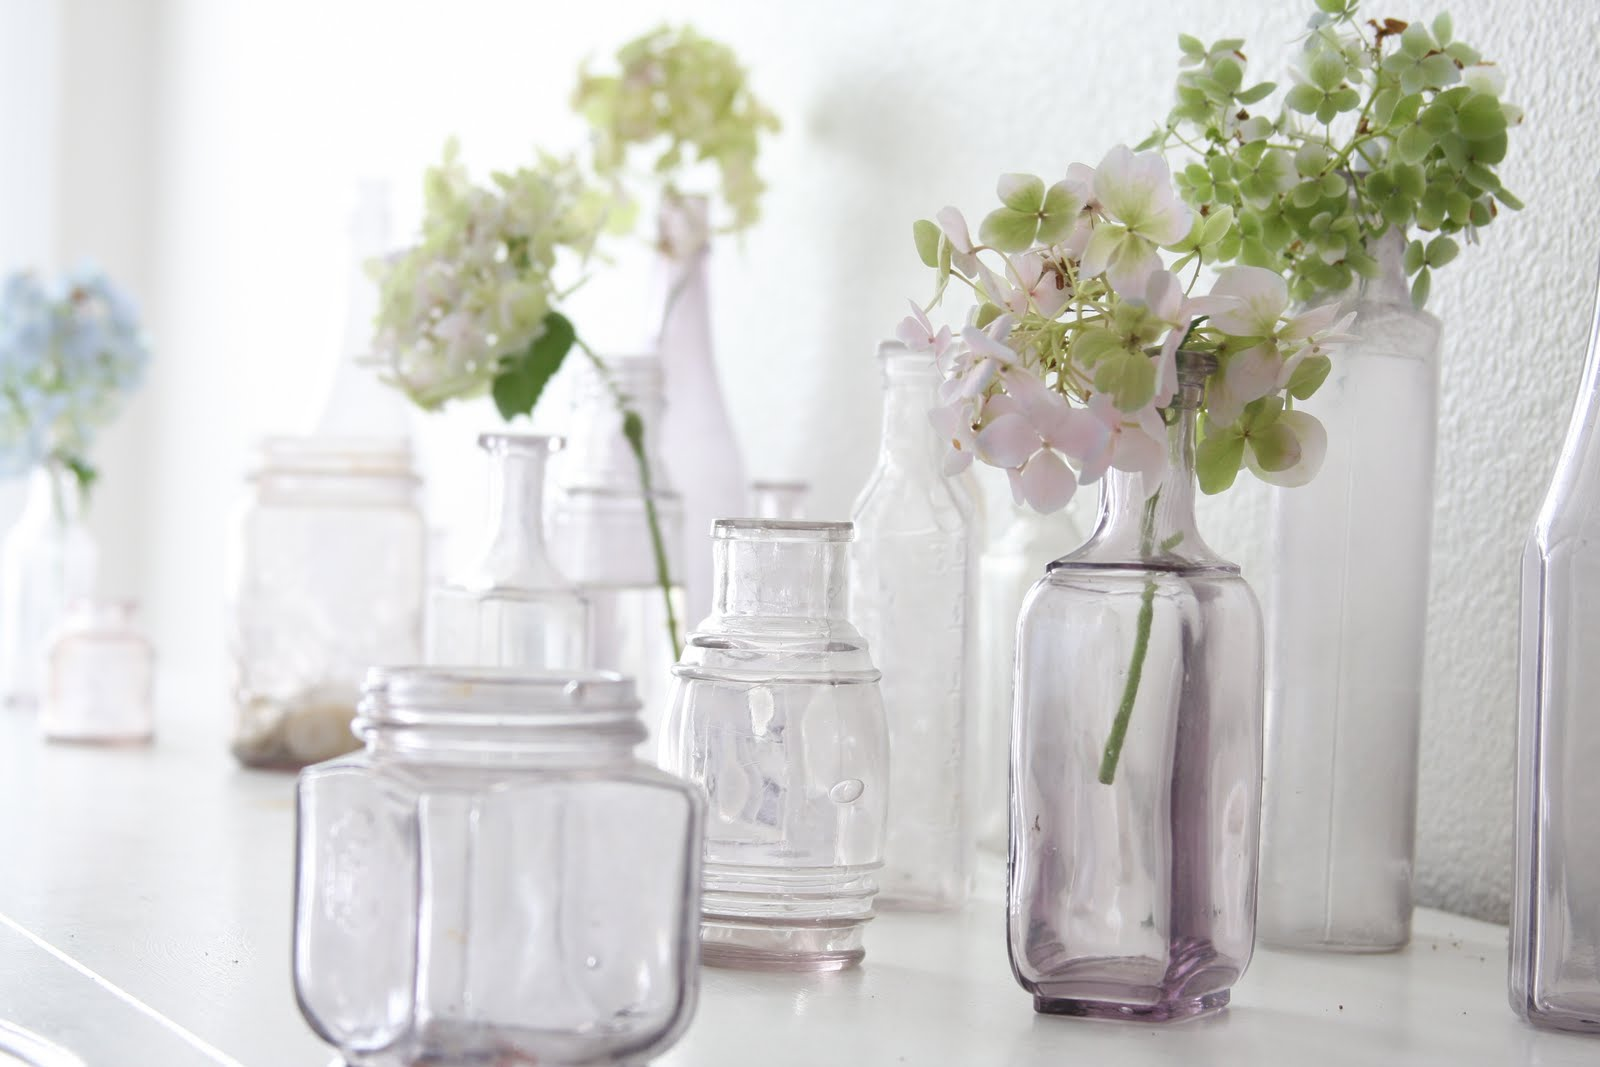 Pretty spaces home decor inspiration page 2 - How to decorate old bottles ...